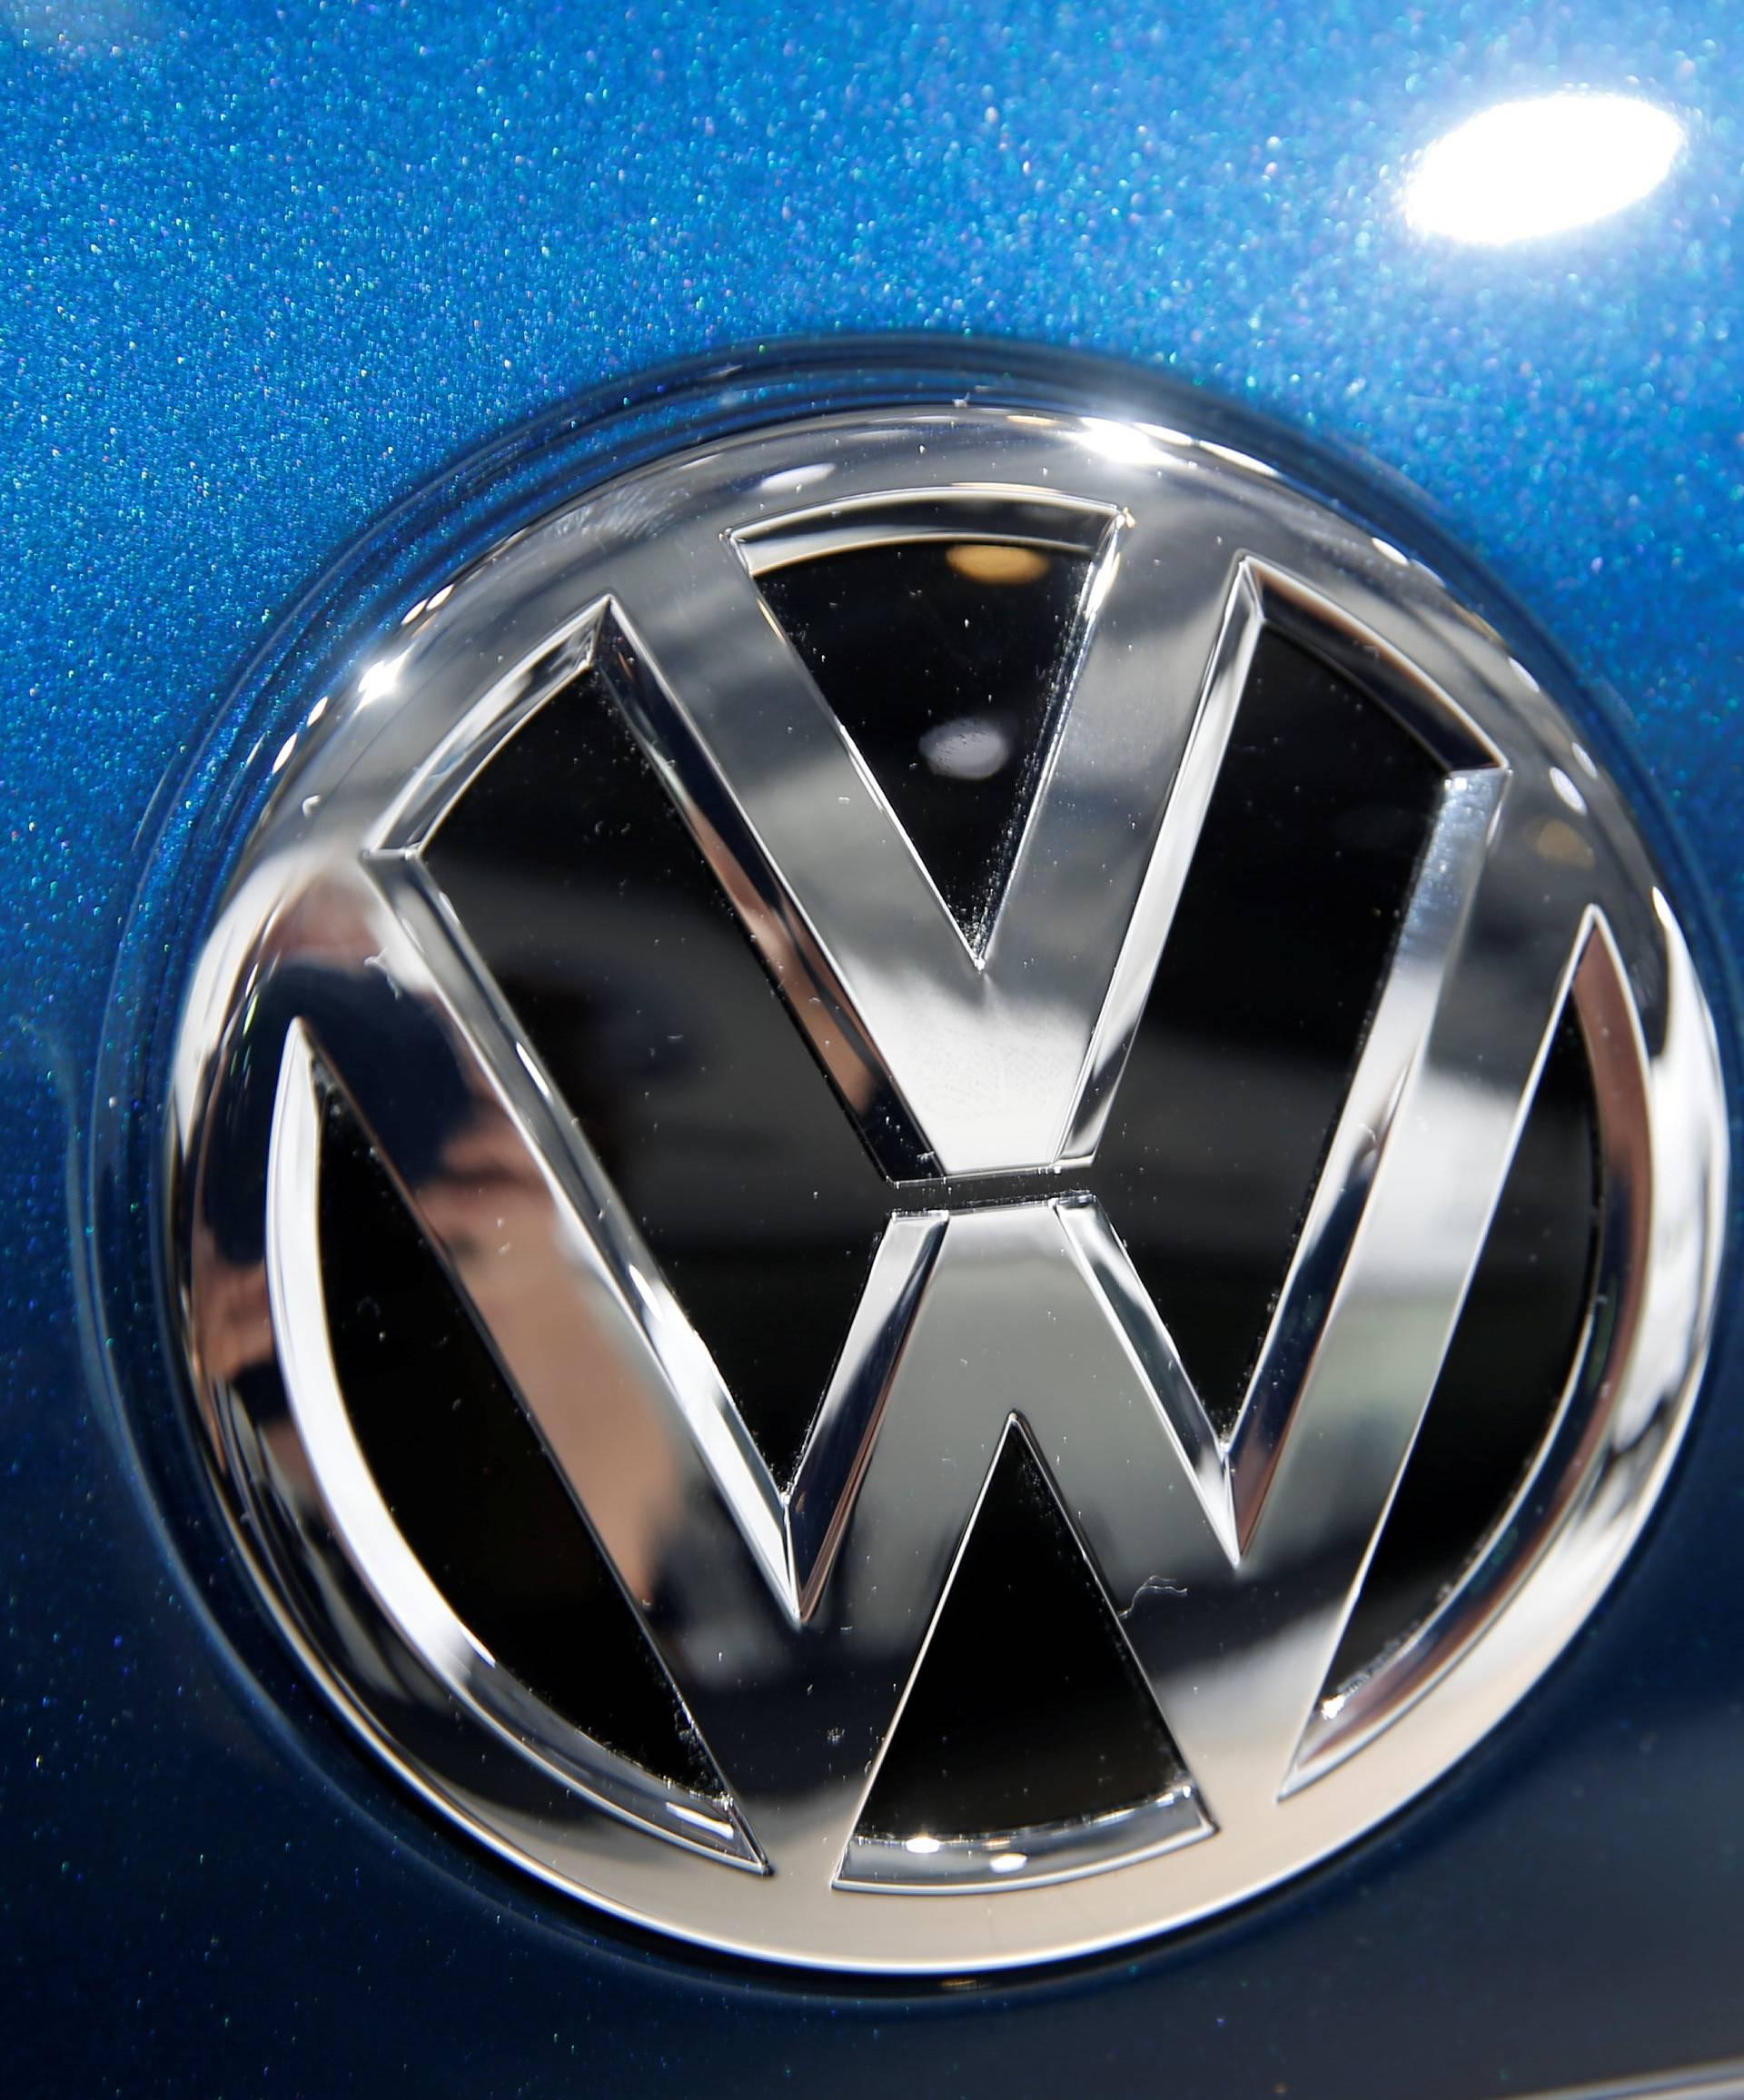 A Volkswagen logo is pictured during the Volkswagen Group's annual general meeting in Berlin